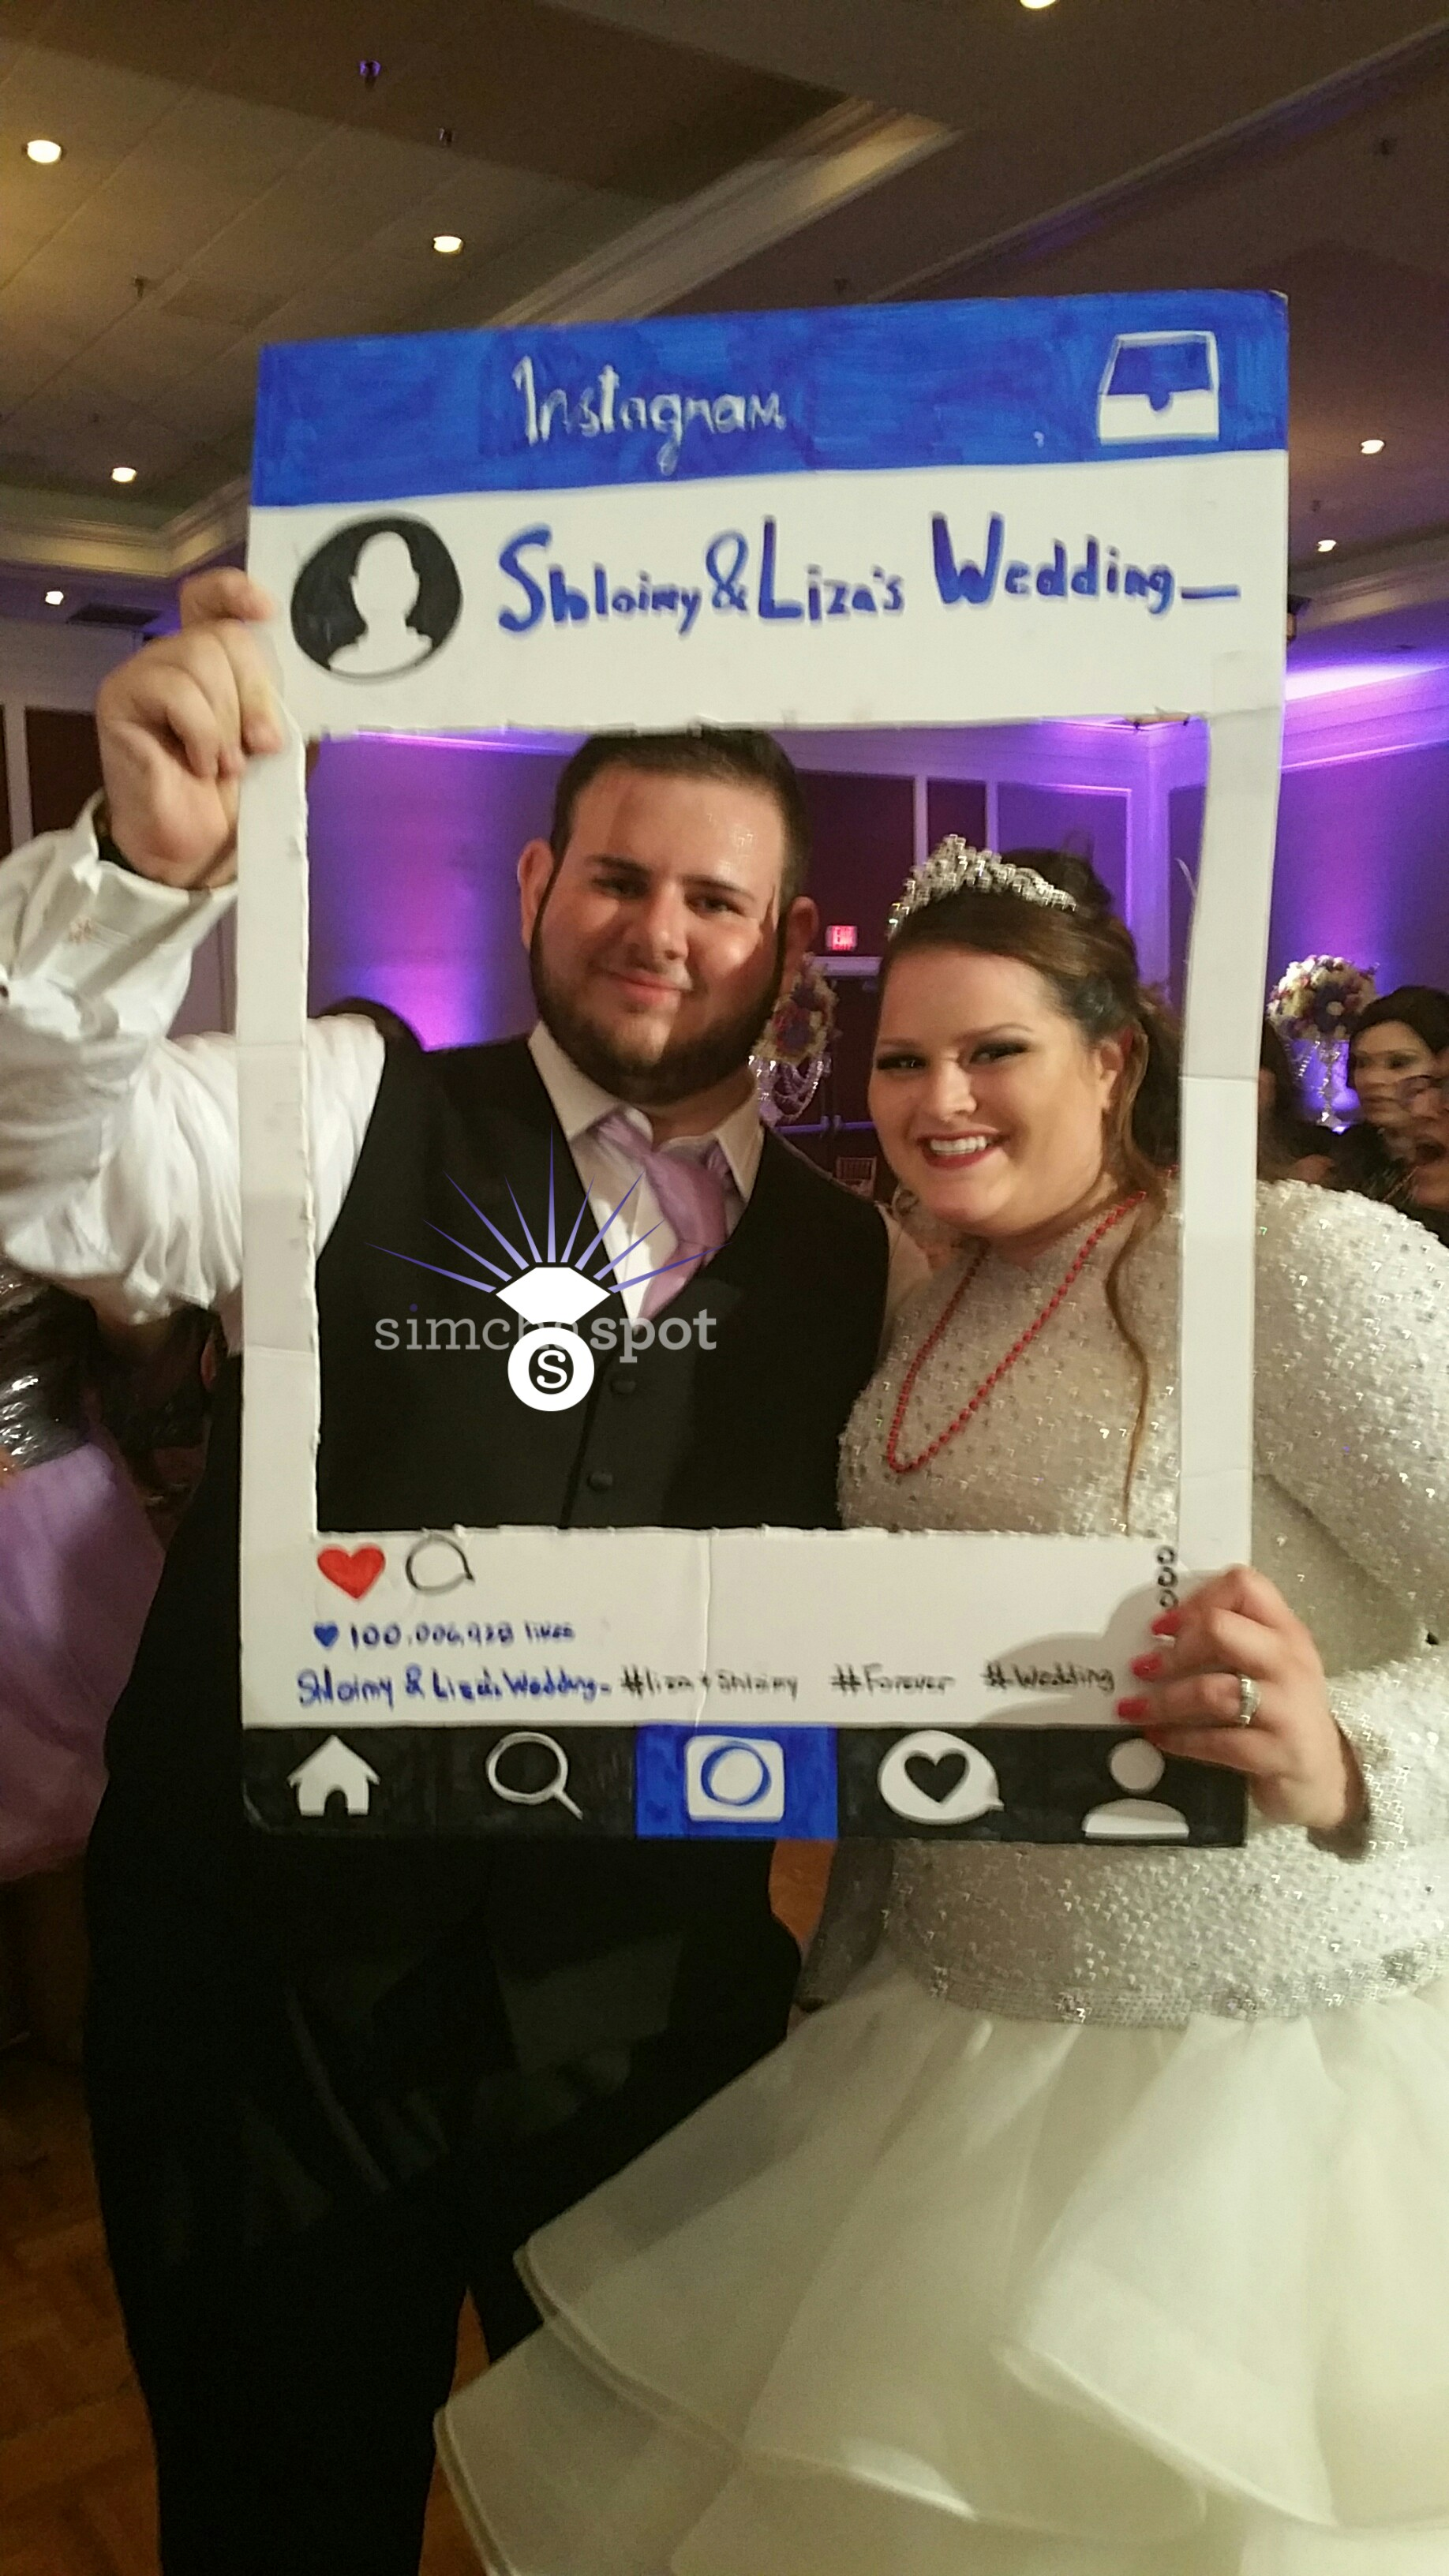 wedding of shlomie and liza lunger miami 2 pics photo